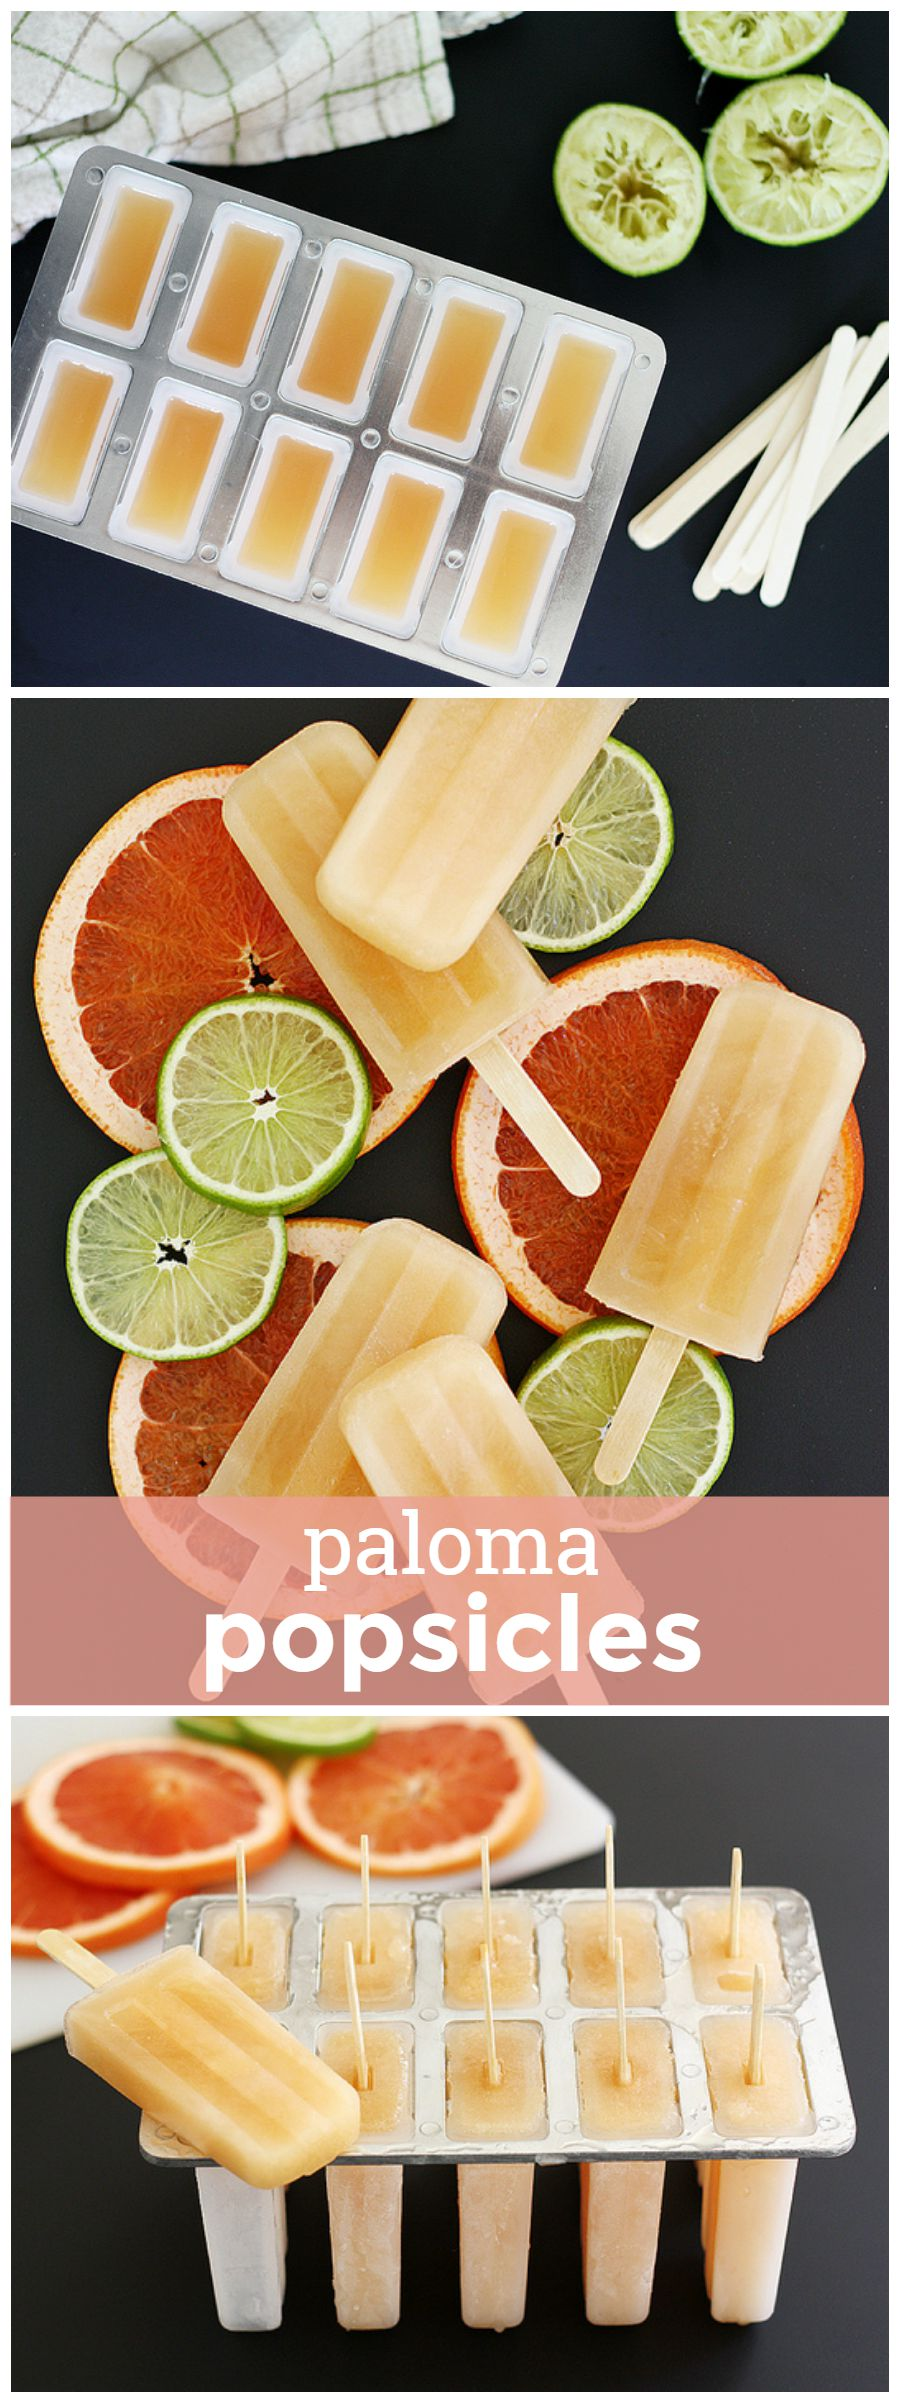 Paloma Popsicles -- The grapefruit soda-based tequila cocktail in popsicle form. YUM. girlversusdough.com @girlversusdough